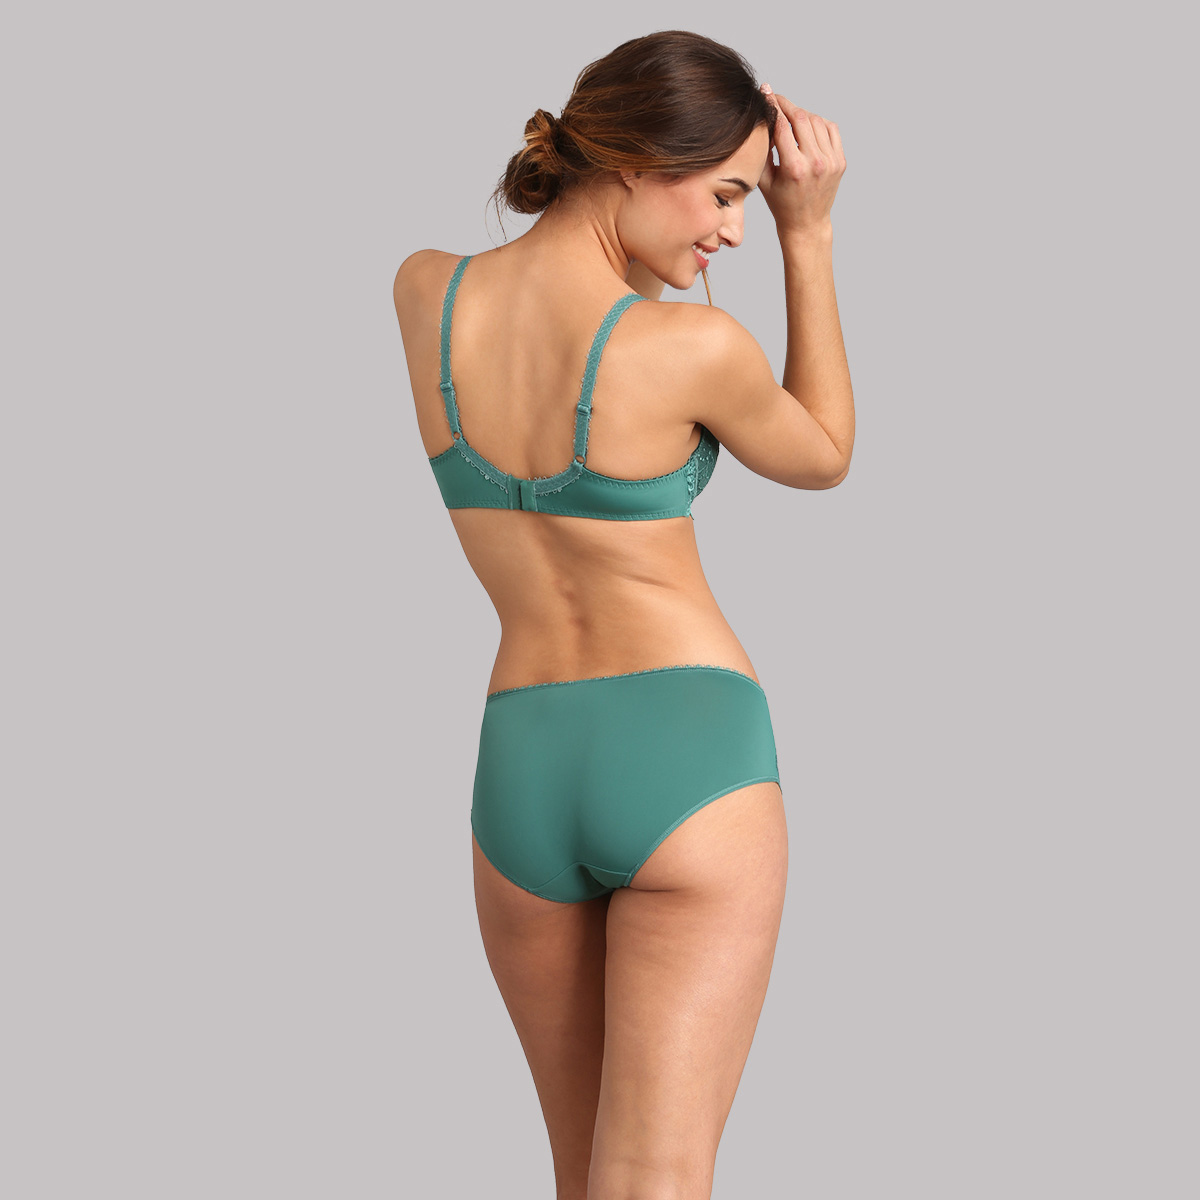 Midi knickers in dark green lace - Flower Elegance, , PLAYTEX